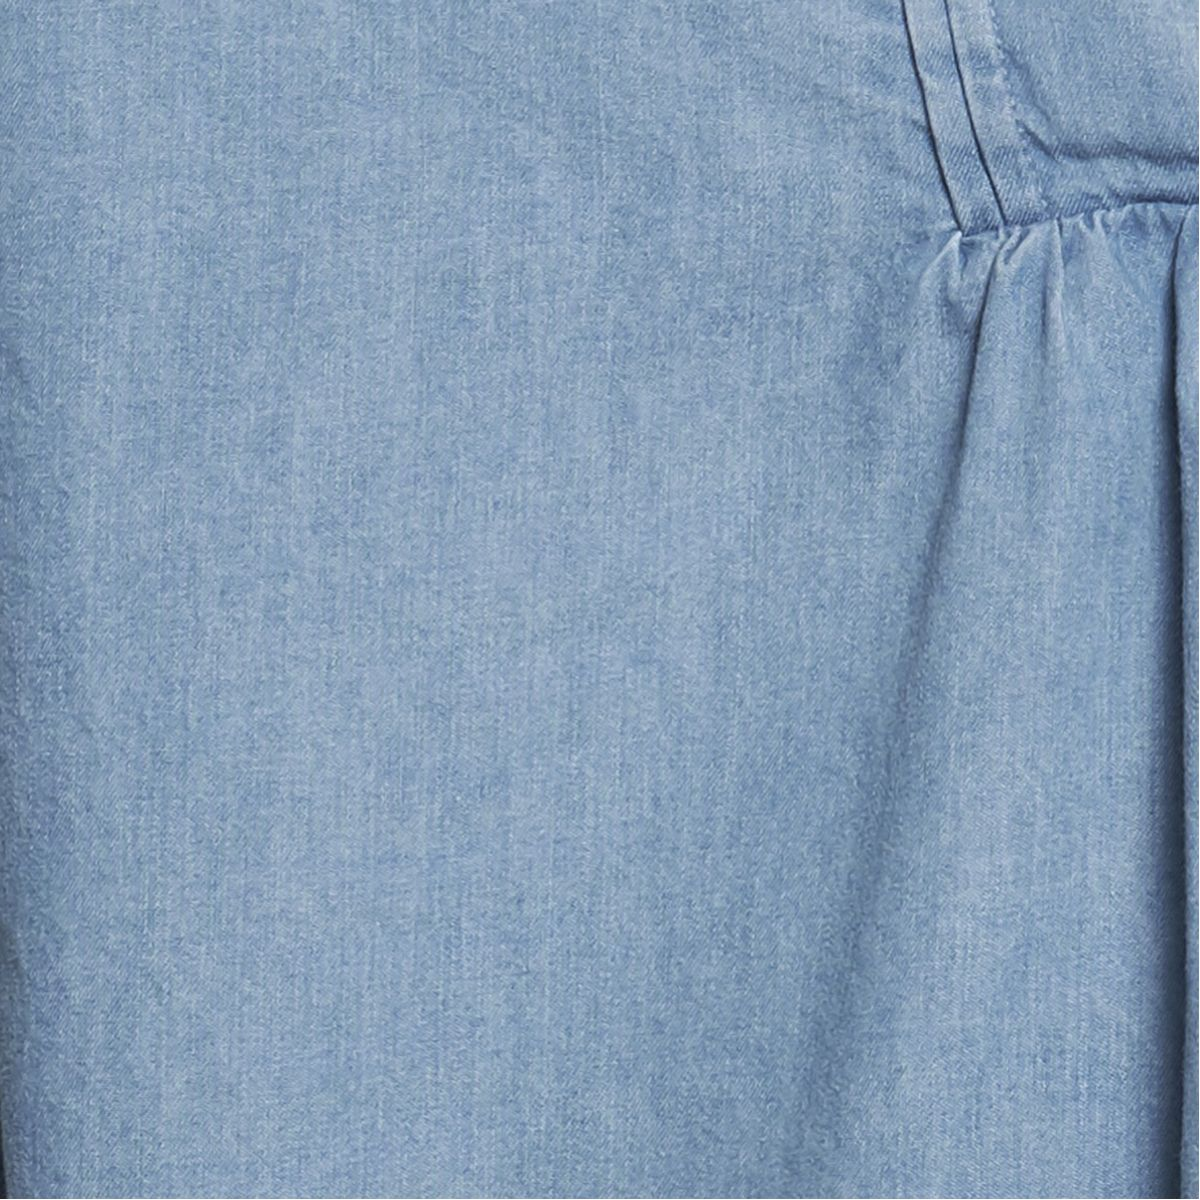 Chemisier denim bleu clair